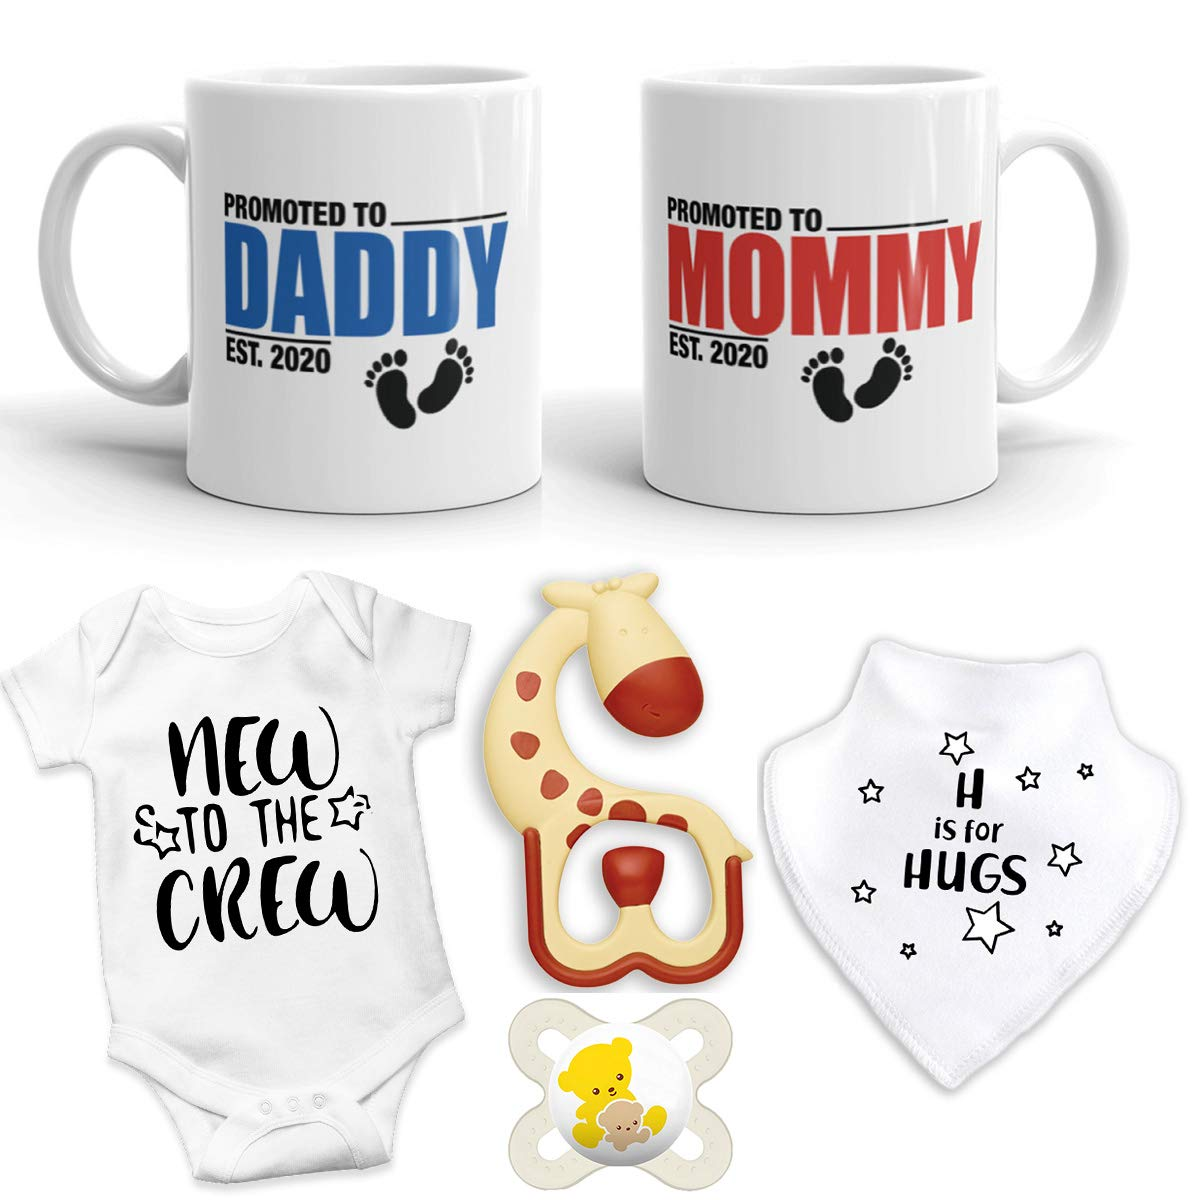 2020 Est Pregnancy Gift - New Promoted to Mommy & Daddy 11 oz mug set with''New to the Crew'' Baby Romper, BIB, Teether, and Pacifier - Top Mom & Dad Gift Set (0-3 Months)